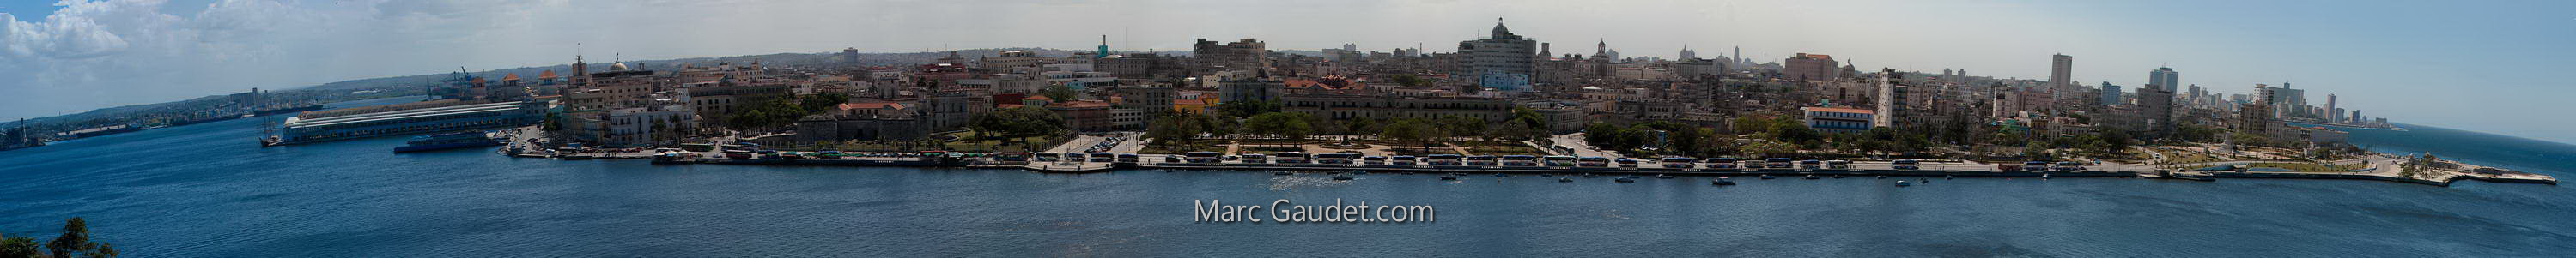 Panoramic view of Havana by Marc Gaudet